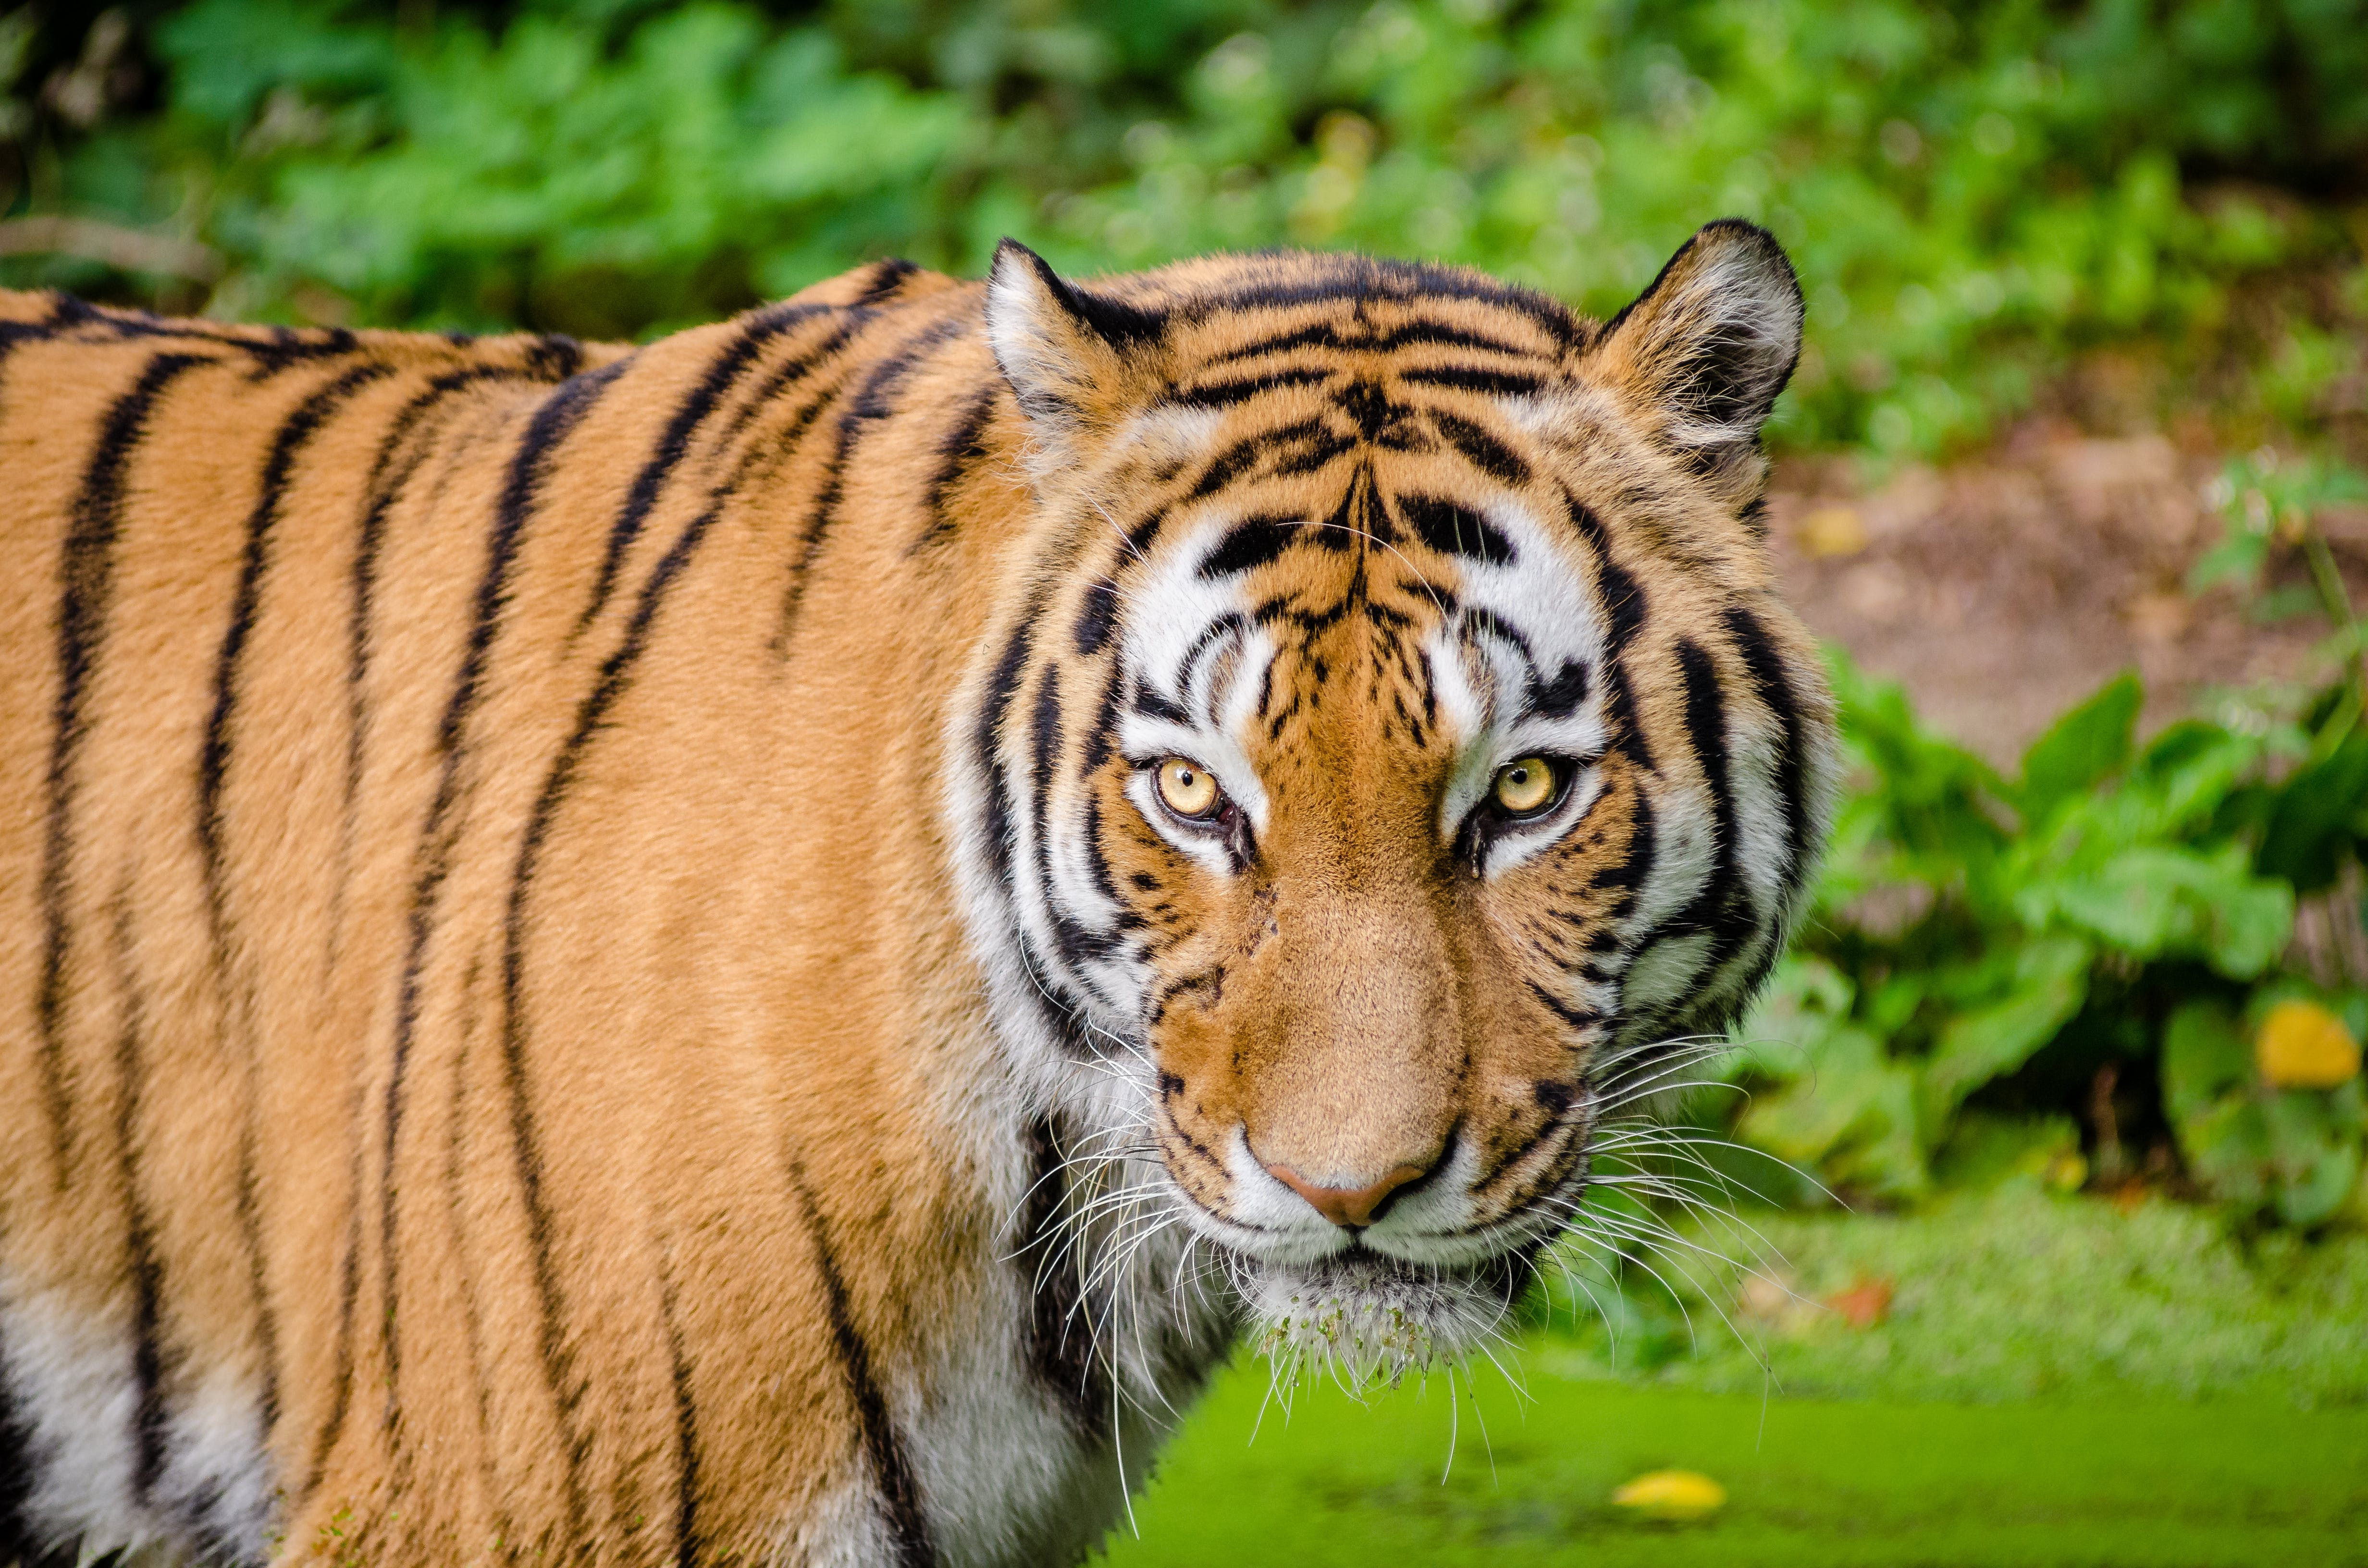 Tiger on Green Lawn Grass